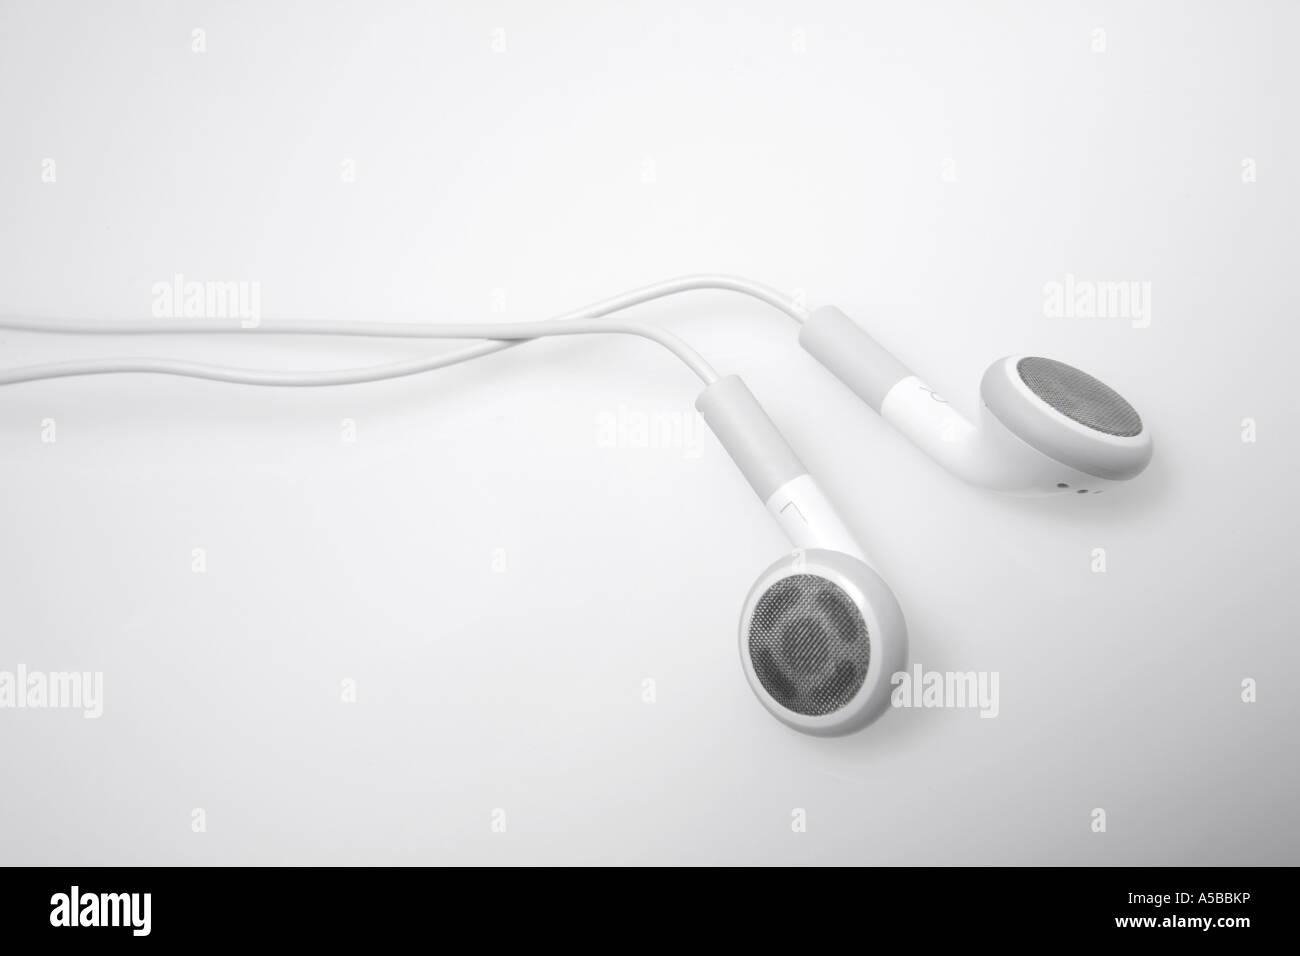 Ipod MP3 Player Earbuds - Stock Image